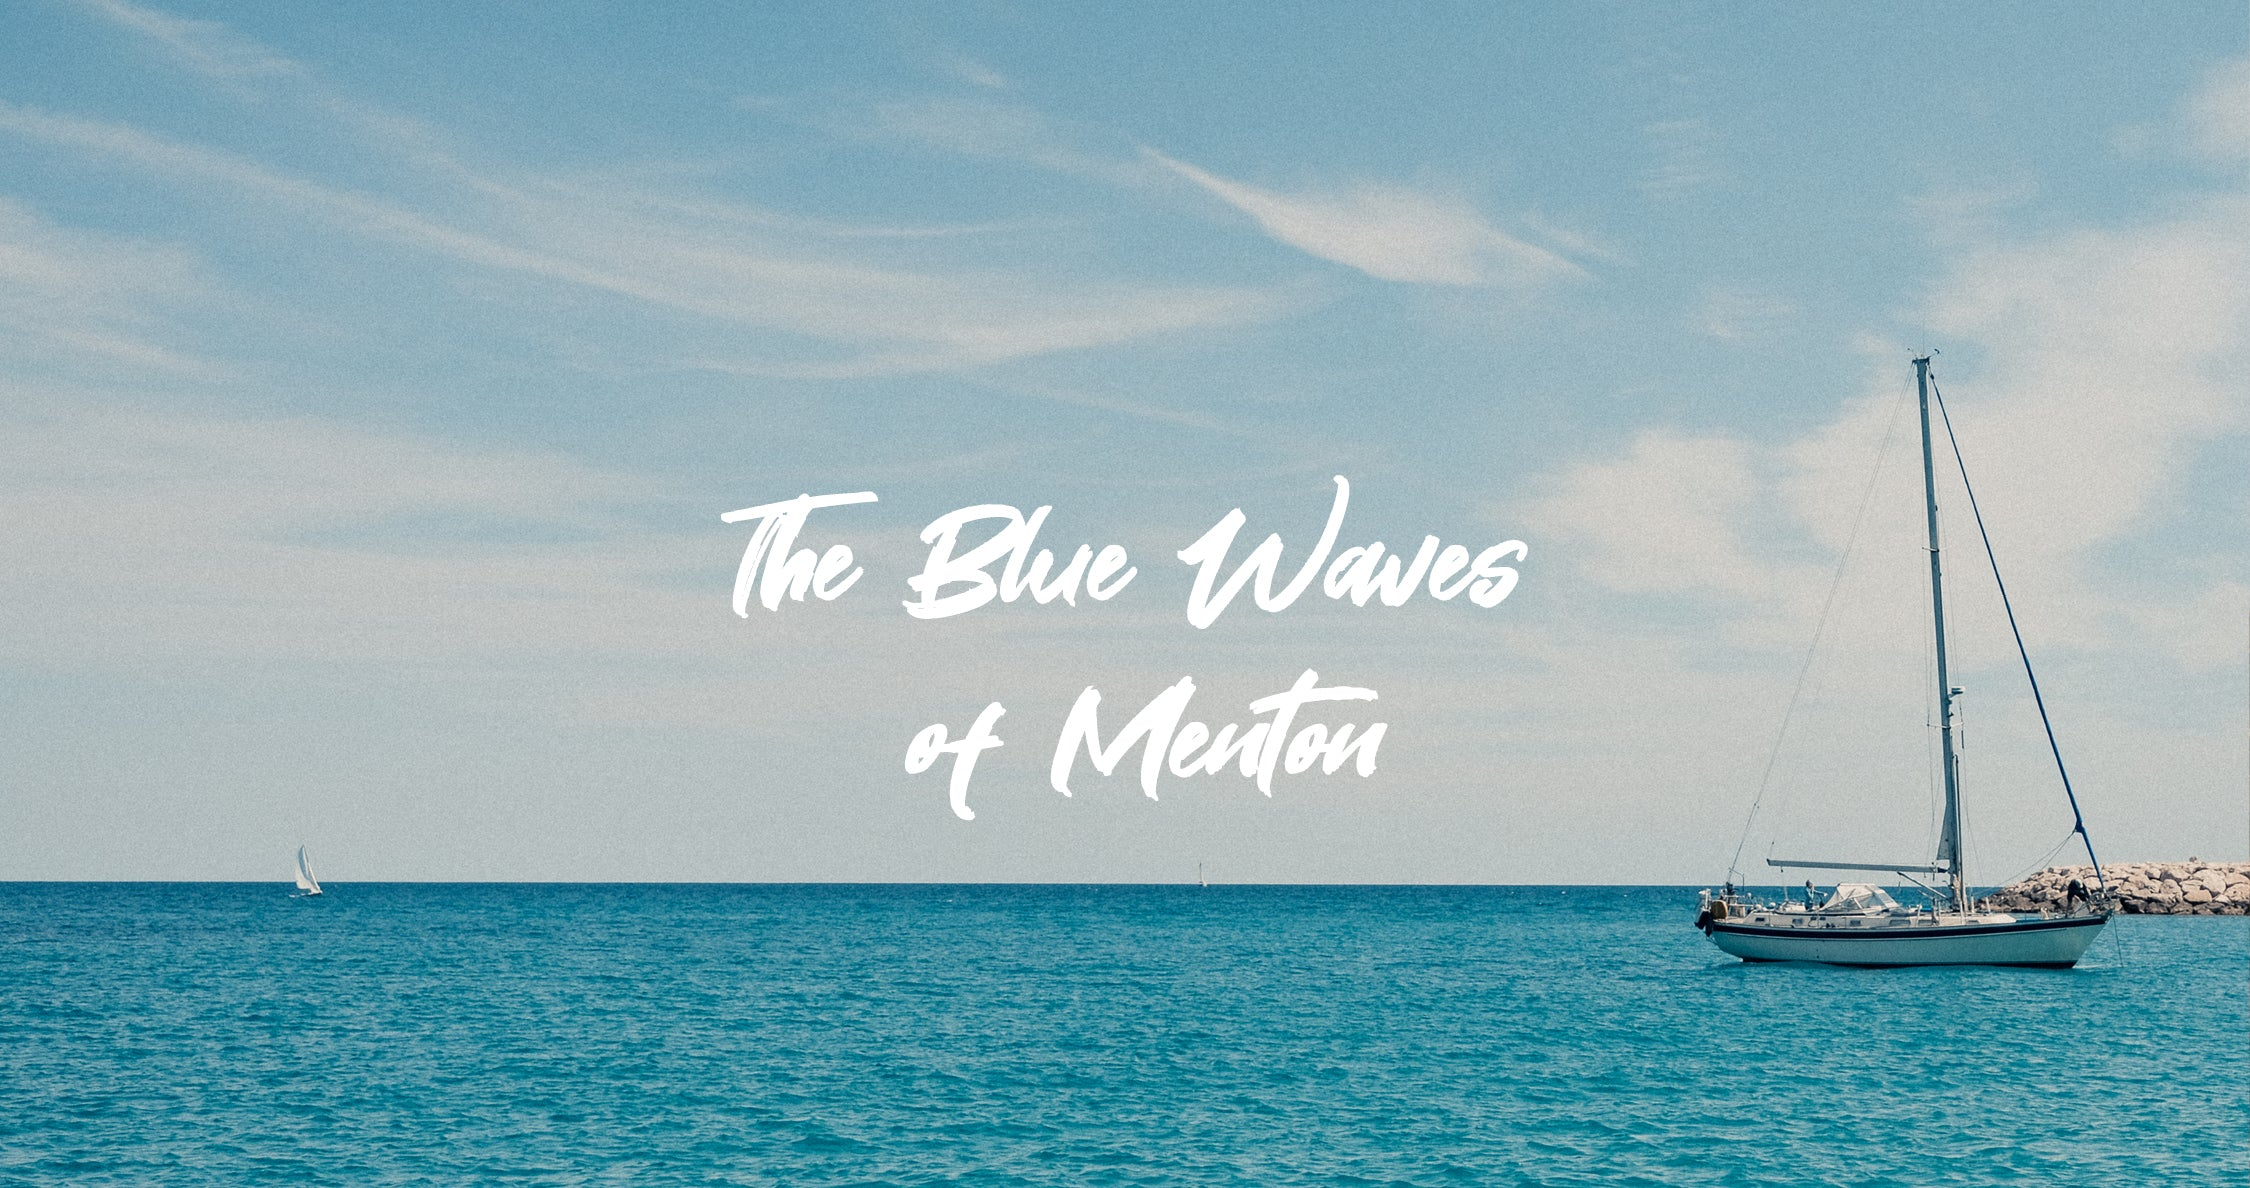 The Blue Waves of Menton